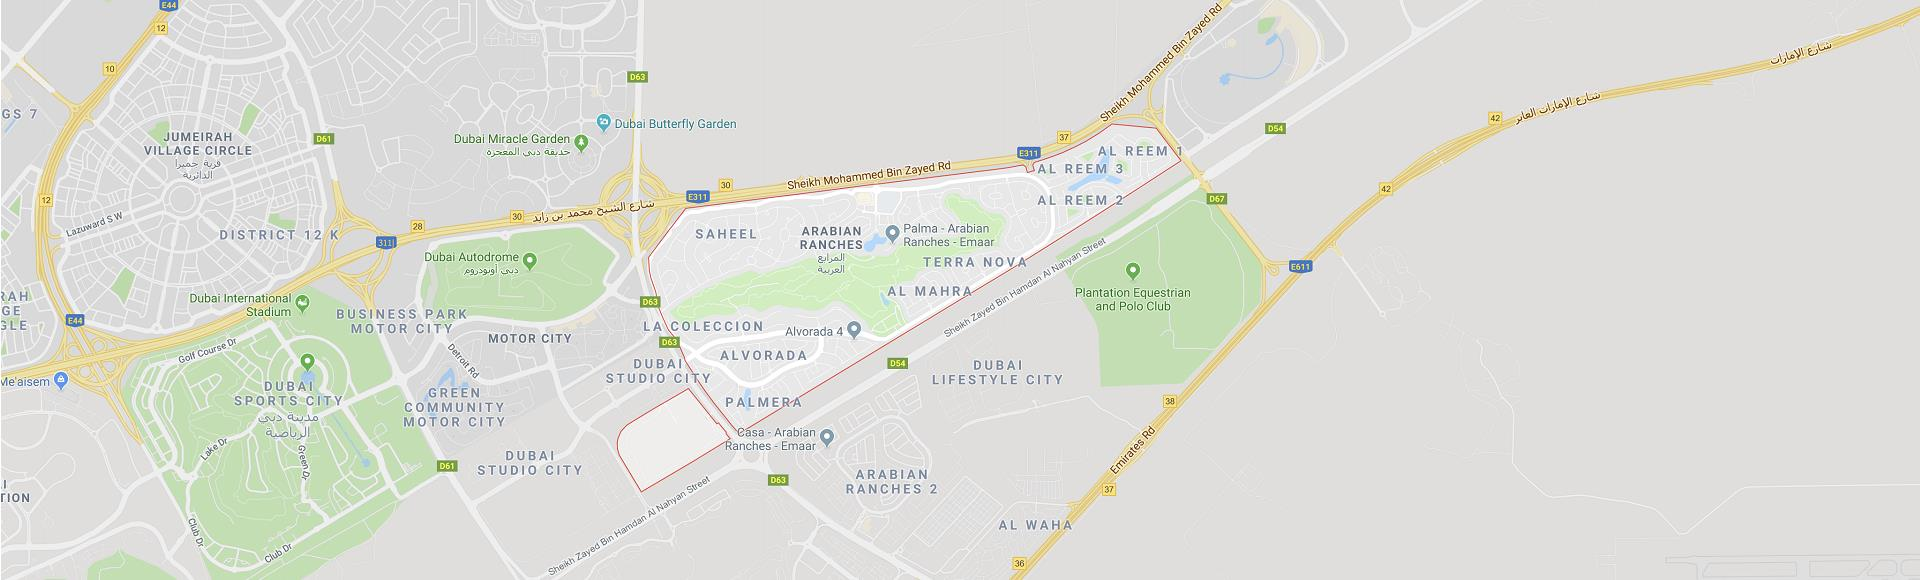 Arabian Ranches Dubai Location Map